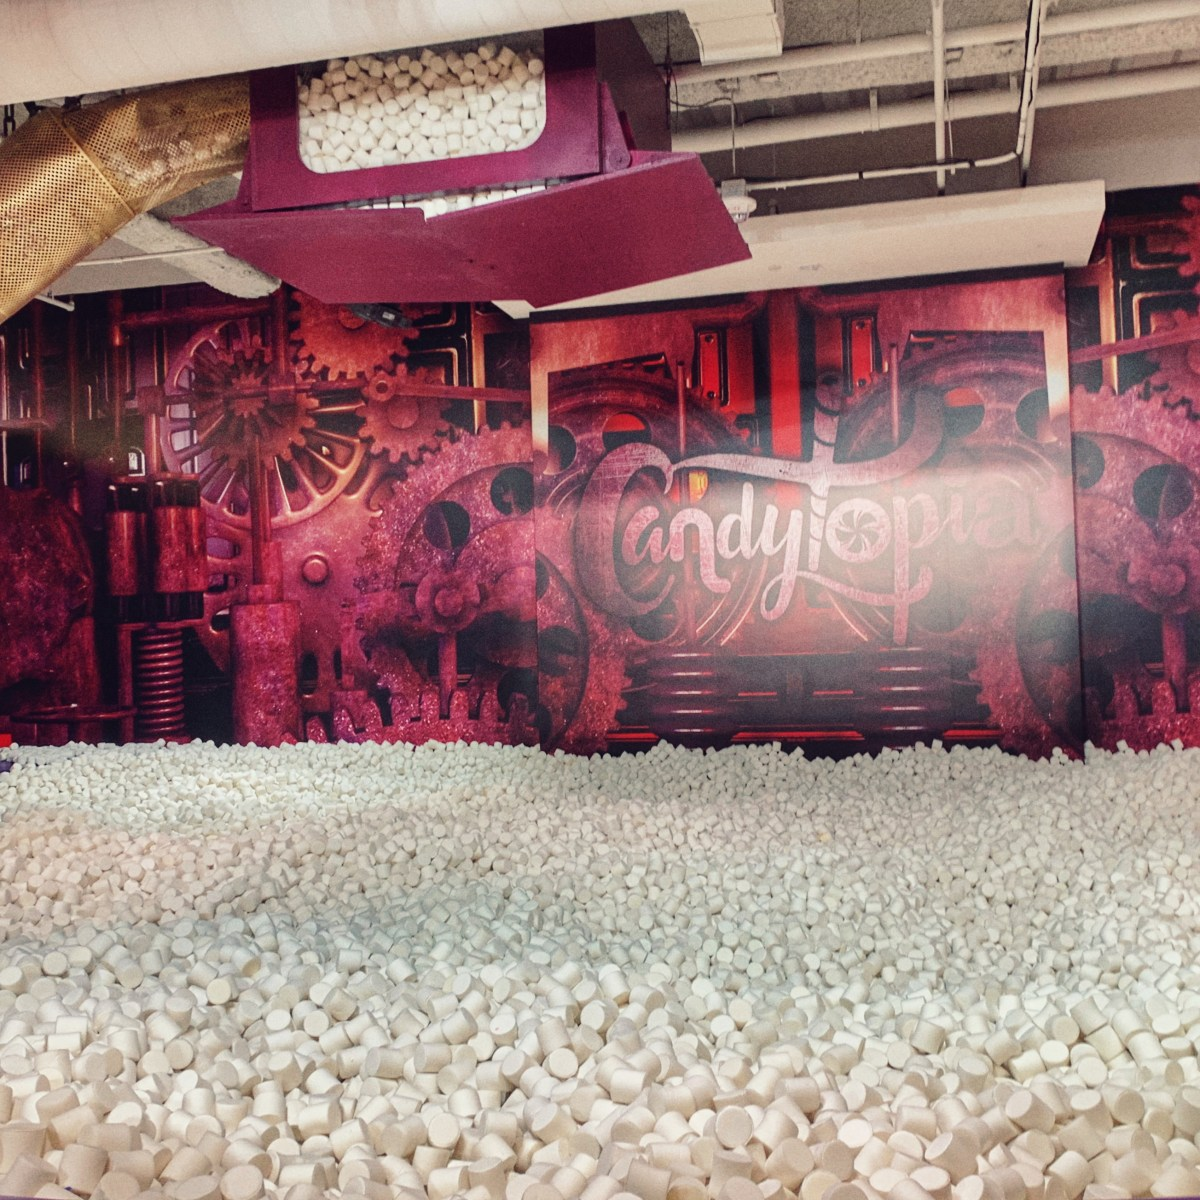 Yes you can Candytopia alone in San Francisco and still have a party